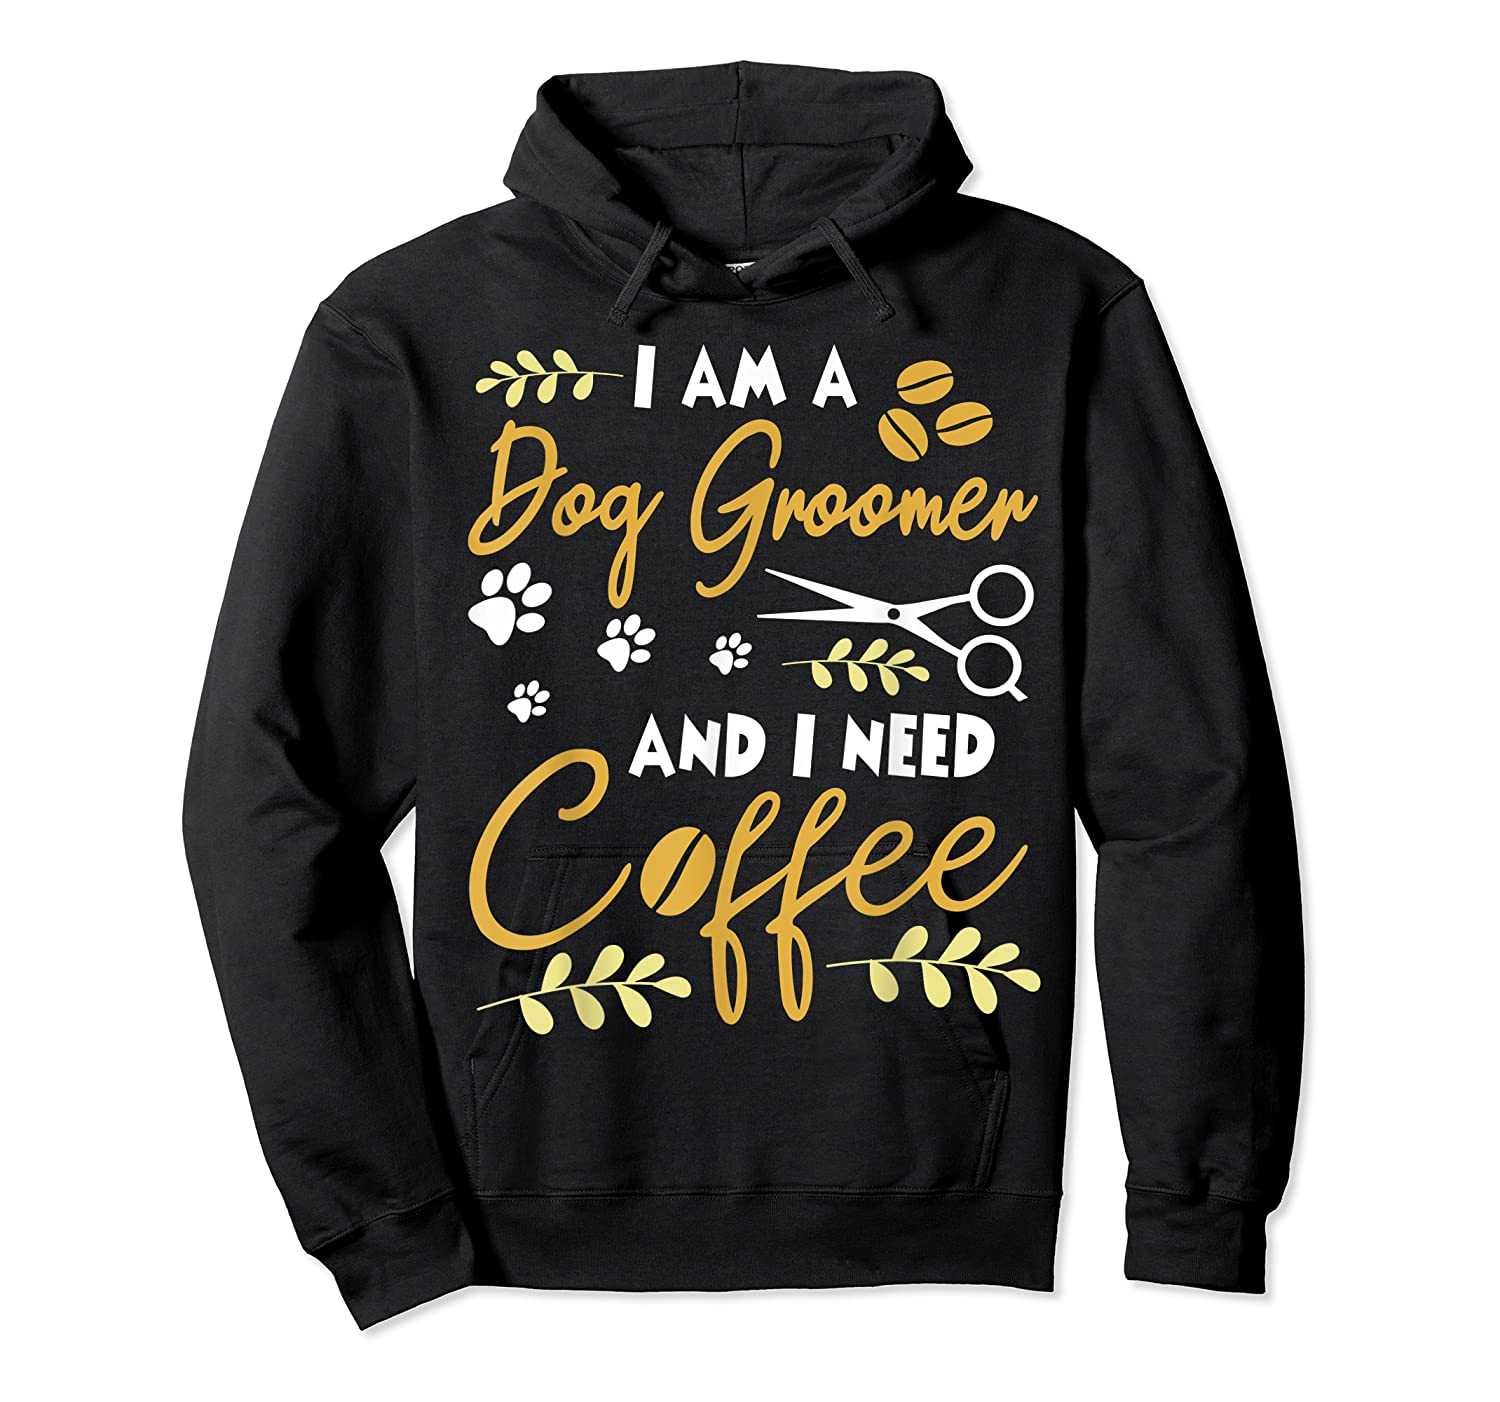 Am A Dog Groomer And Need Coffee Happy Dad Mom Shirts Unisex Pullover Hoodie